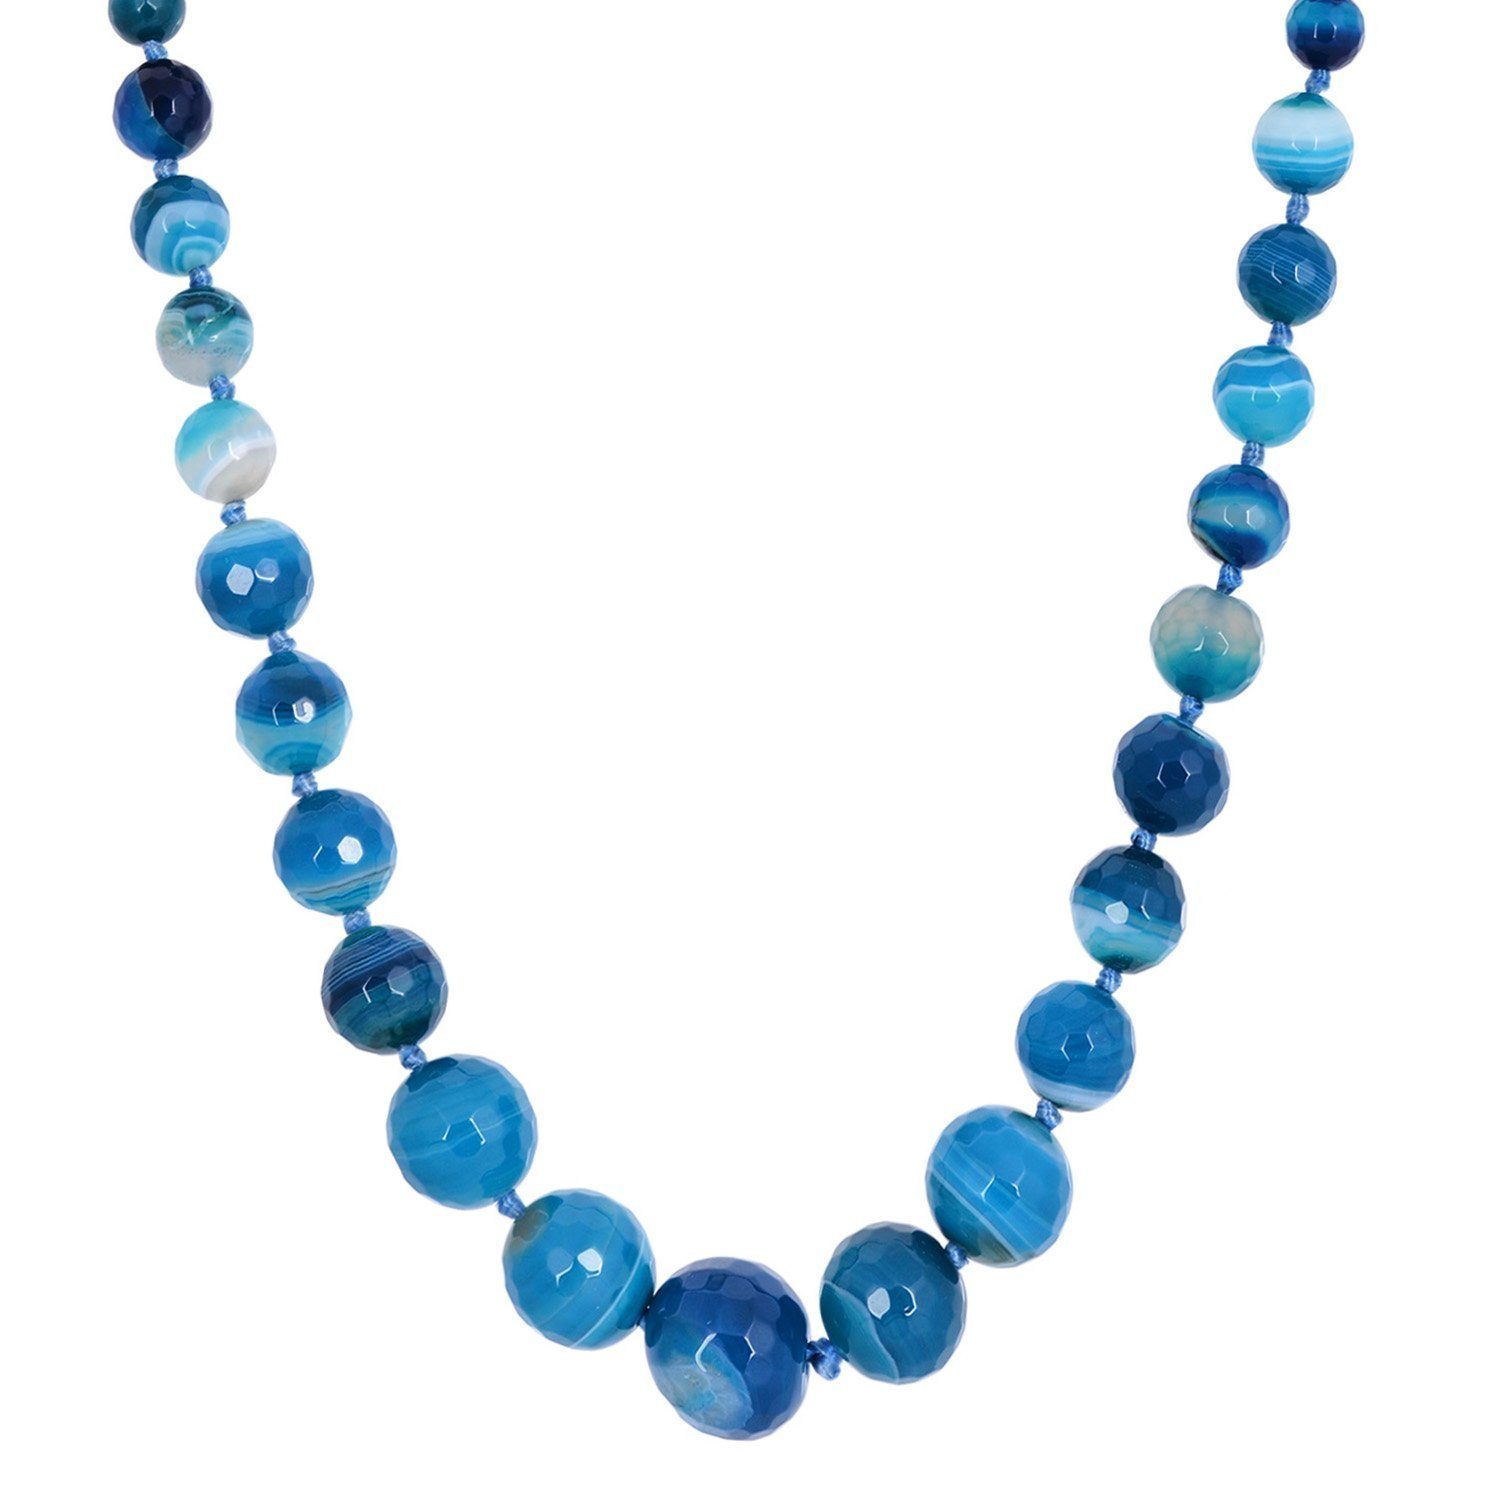 blue peel spirit shop bead a click gold navy beads by two fan pack necklaces necklace